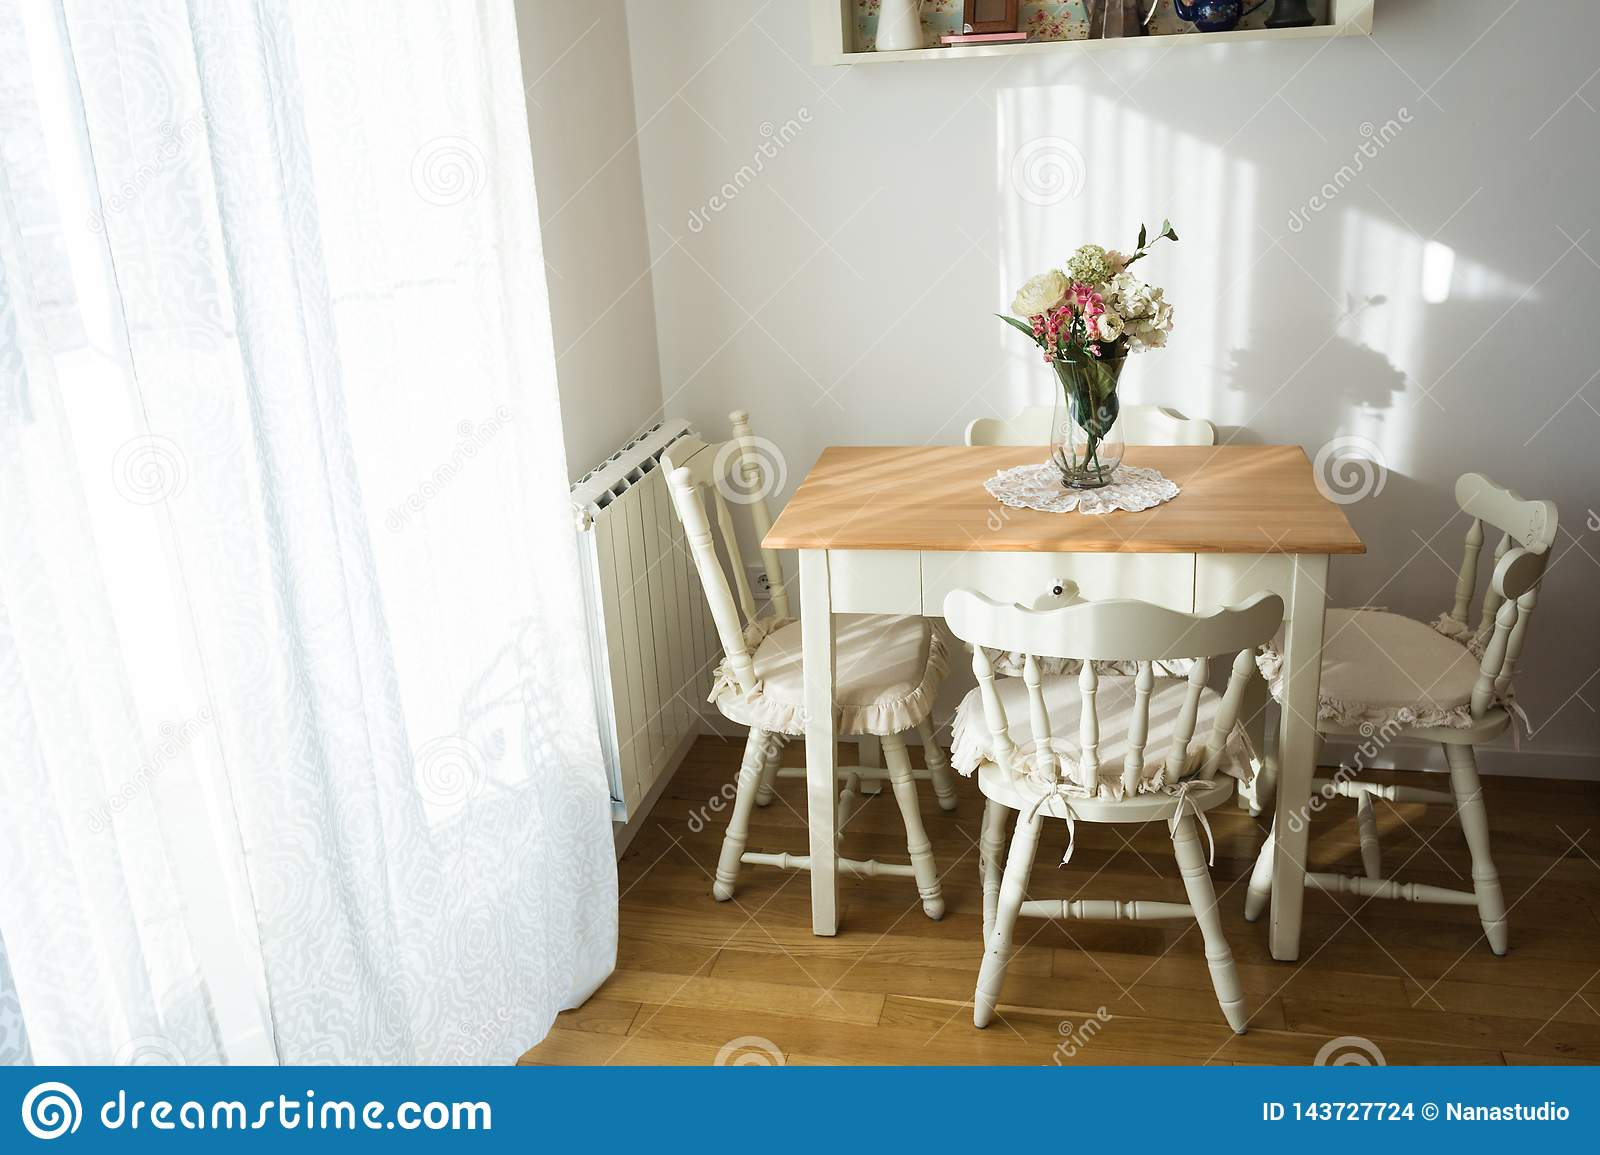 Nicely decorated living  lunch  room. Dining table and some chairs